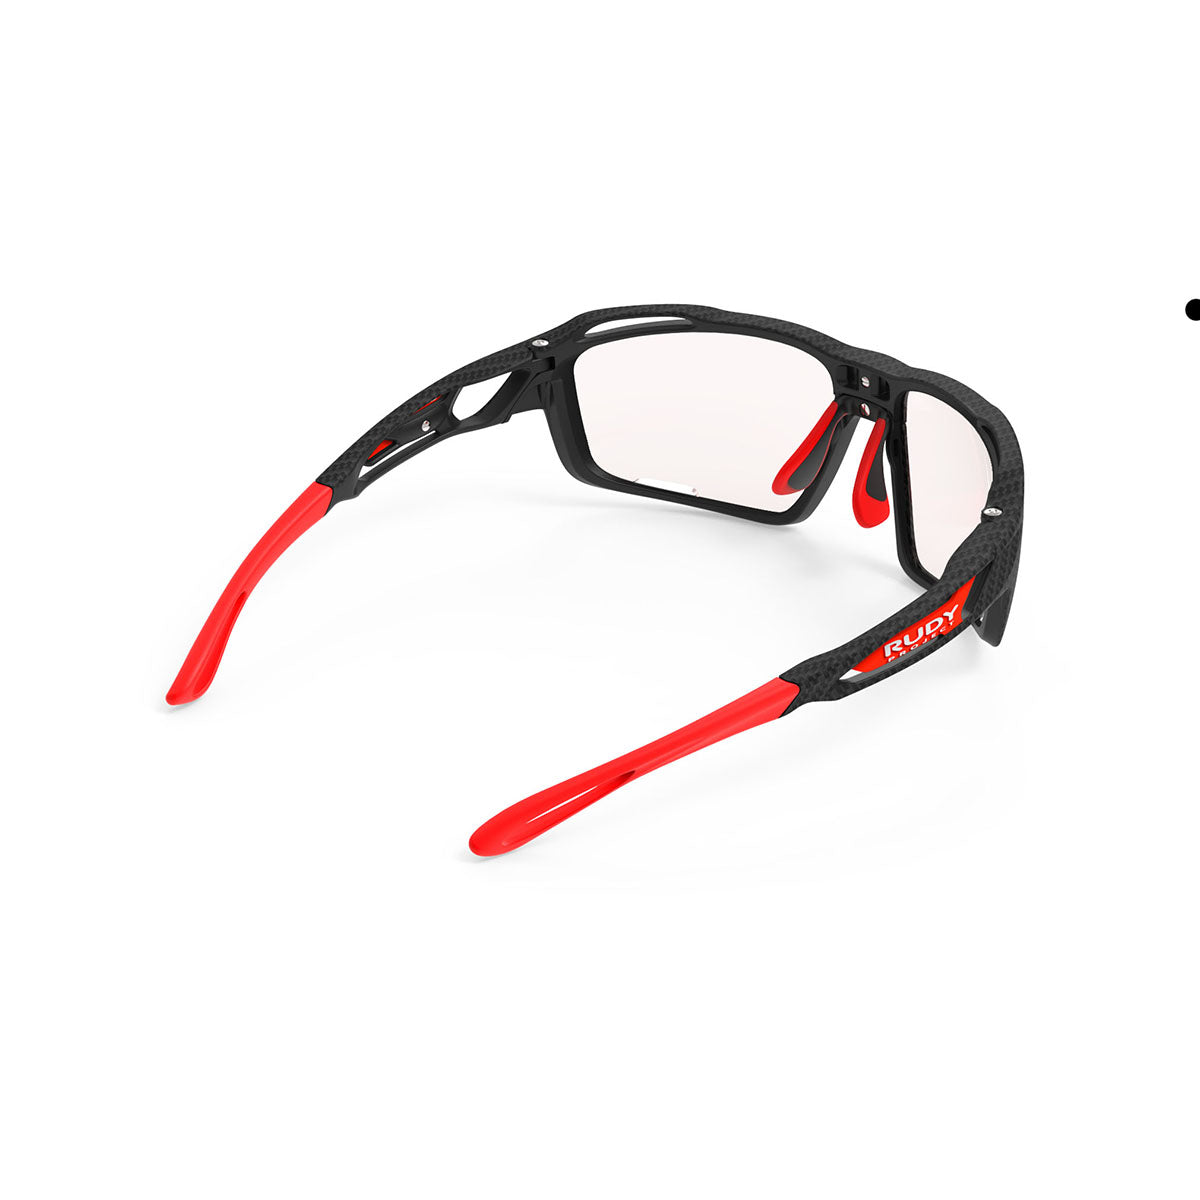 Rudy Project - Sintryx - frame color: Carbonium - lens color: ImpactX-2 Photochromic Clear to Red - Bumper Color:  - photo angle: Top Back Angle Variant Hover Image